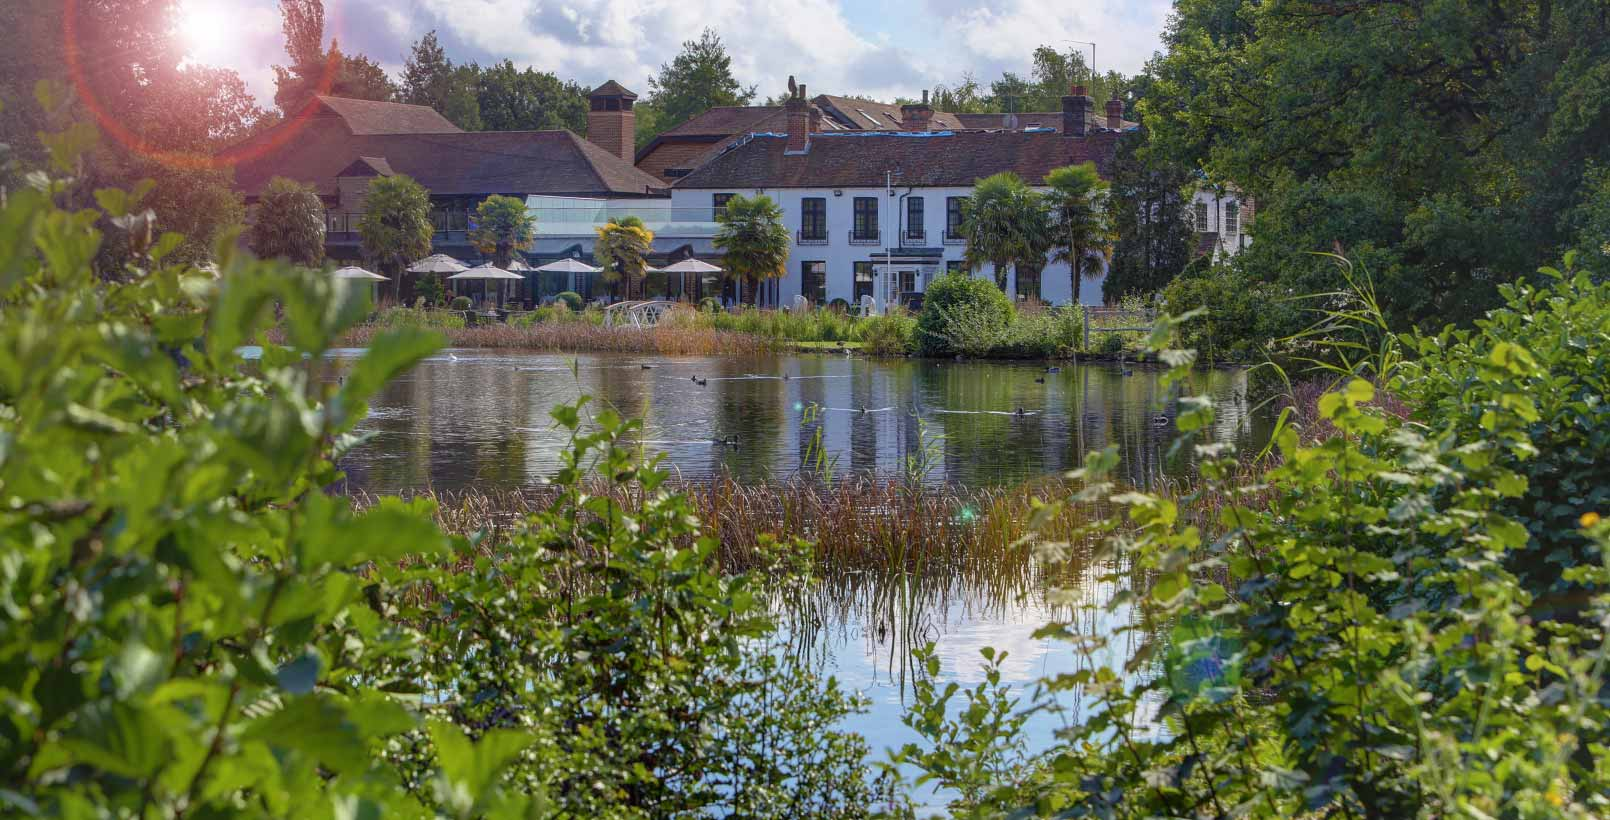 frensham-pond-hotel-grounds-and-hotel-31-83620